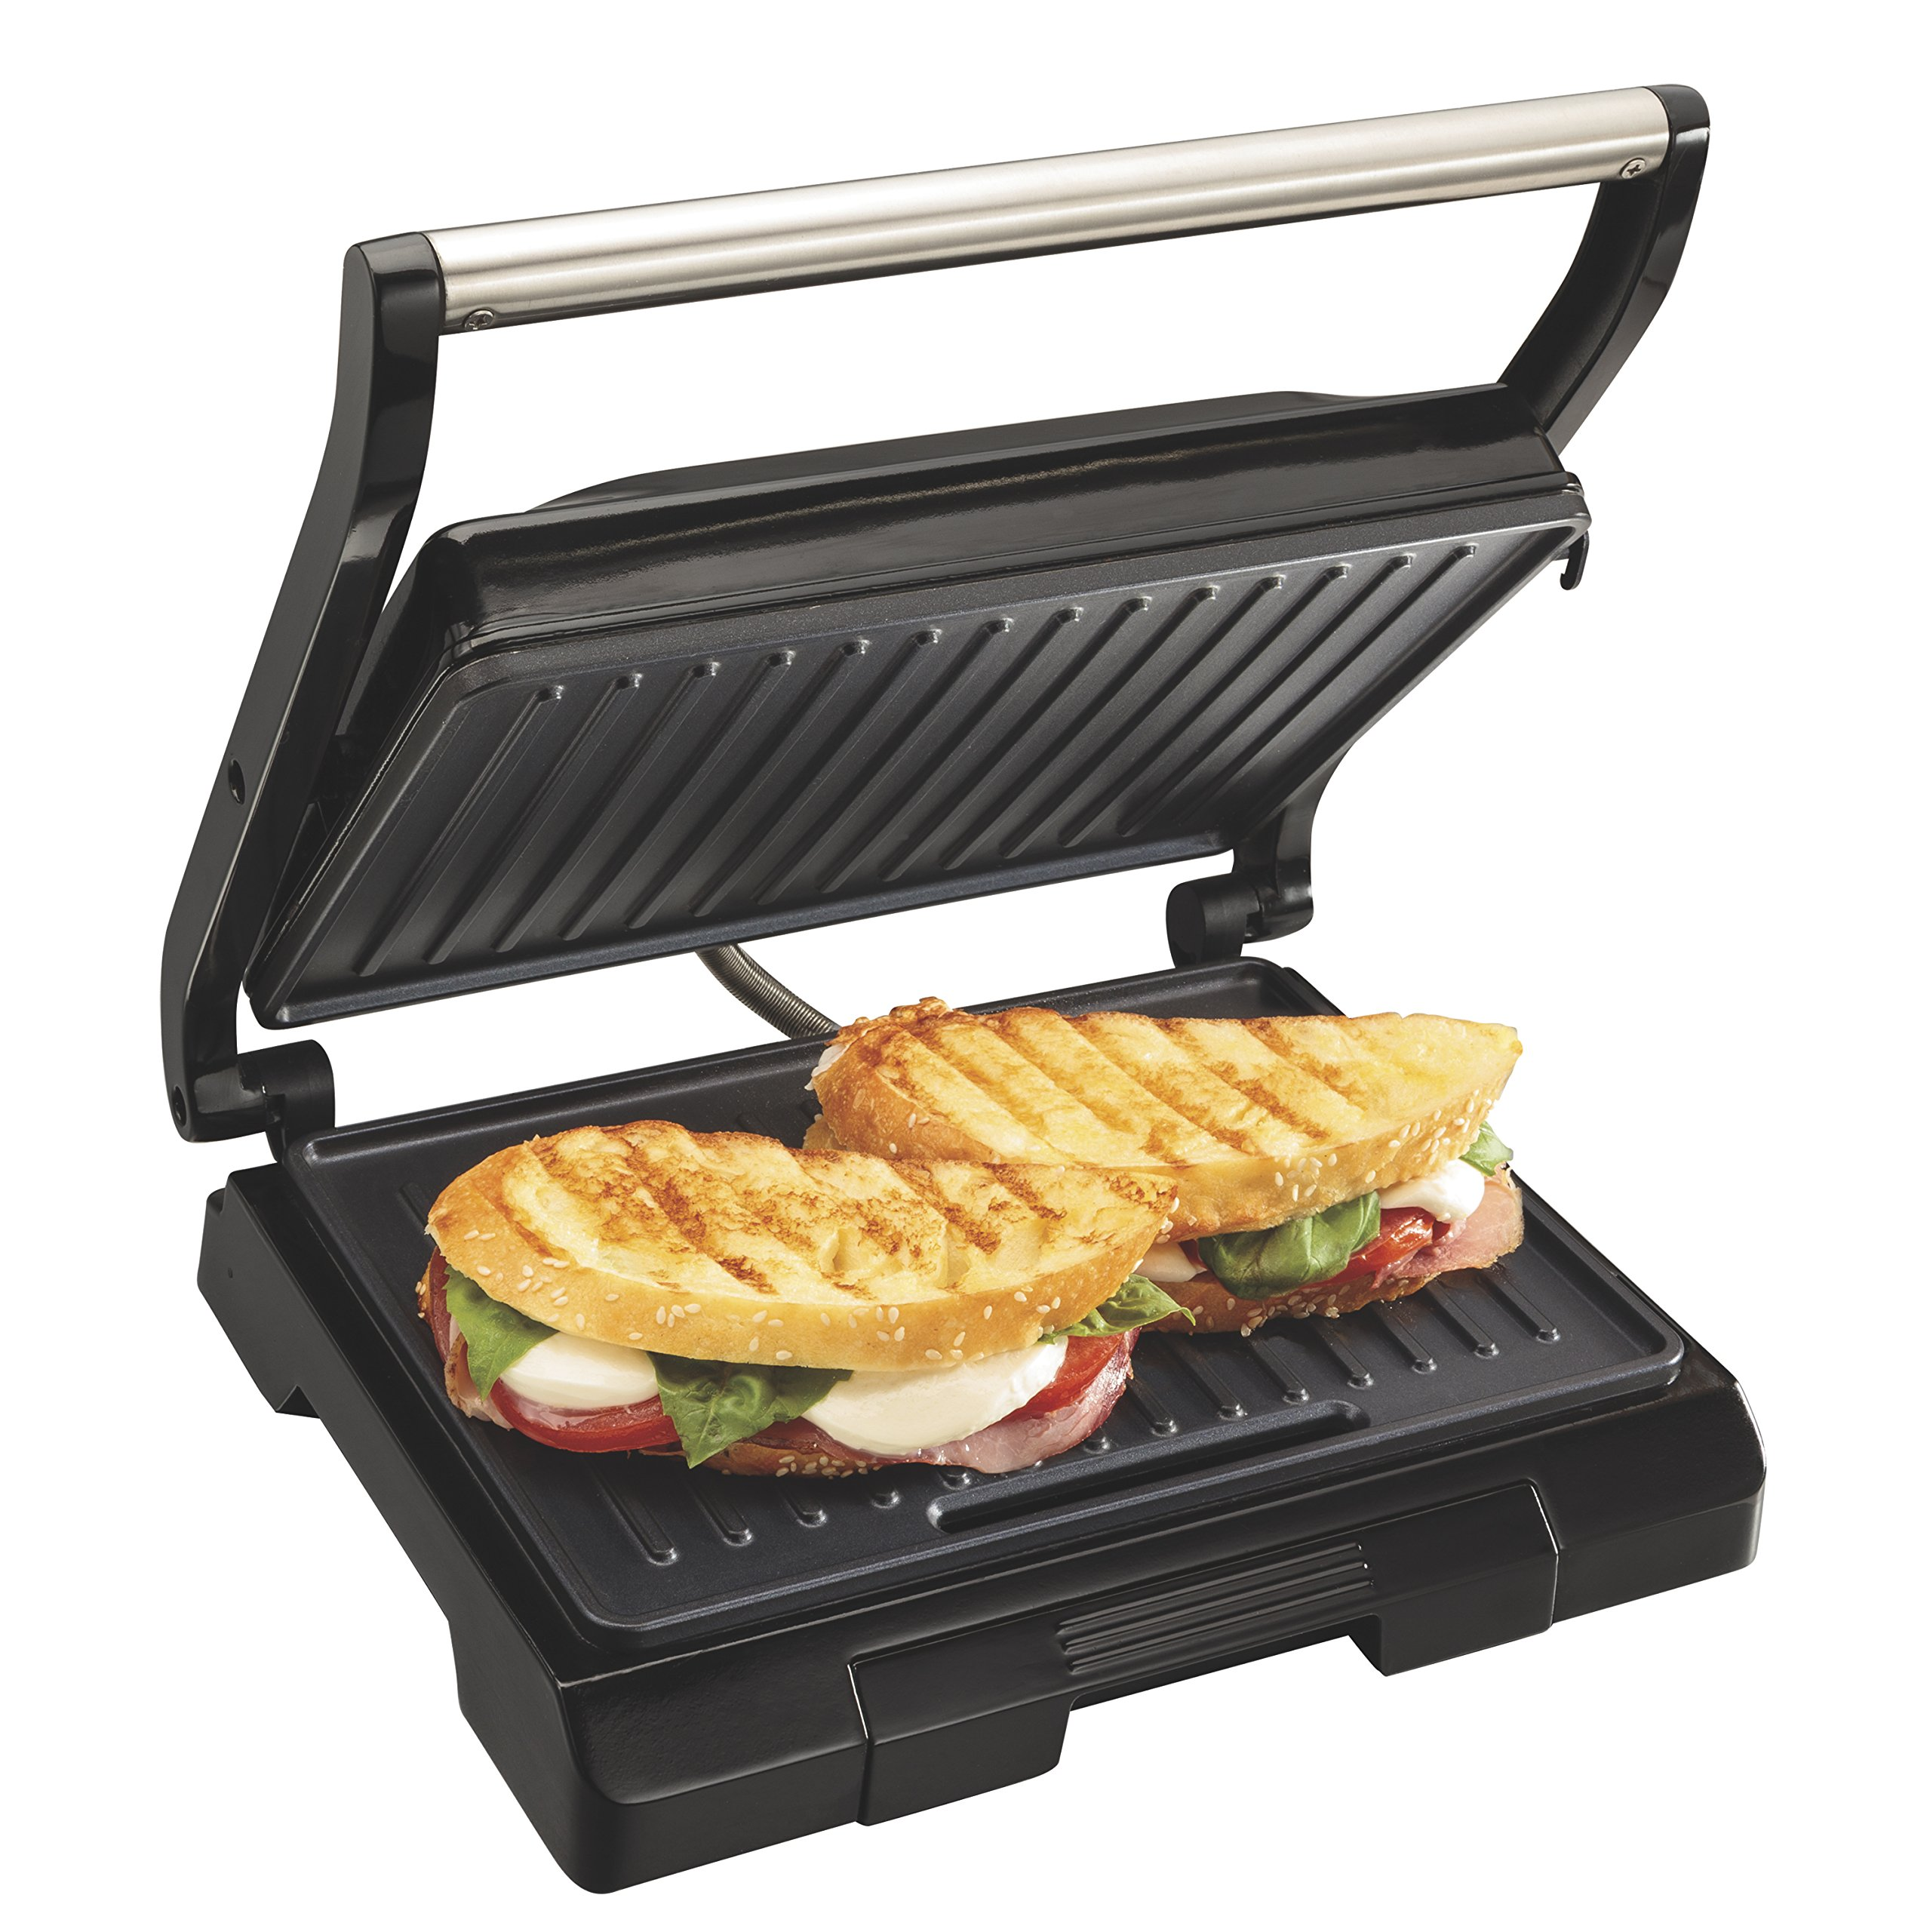 Proctor Silex 4 Serving Panini Press, Sandwich Maker and Compact Indoor Grill, Upright Storage, Easy Clean Nonstick Grids, Black (25440) by Proctor Silex